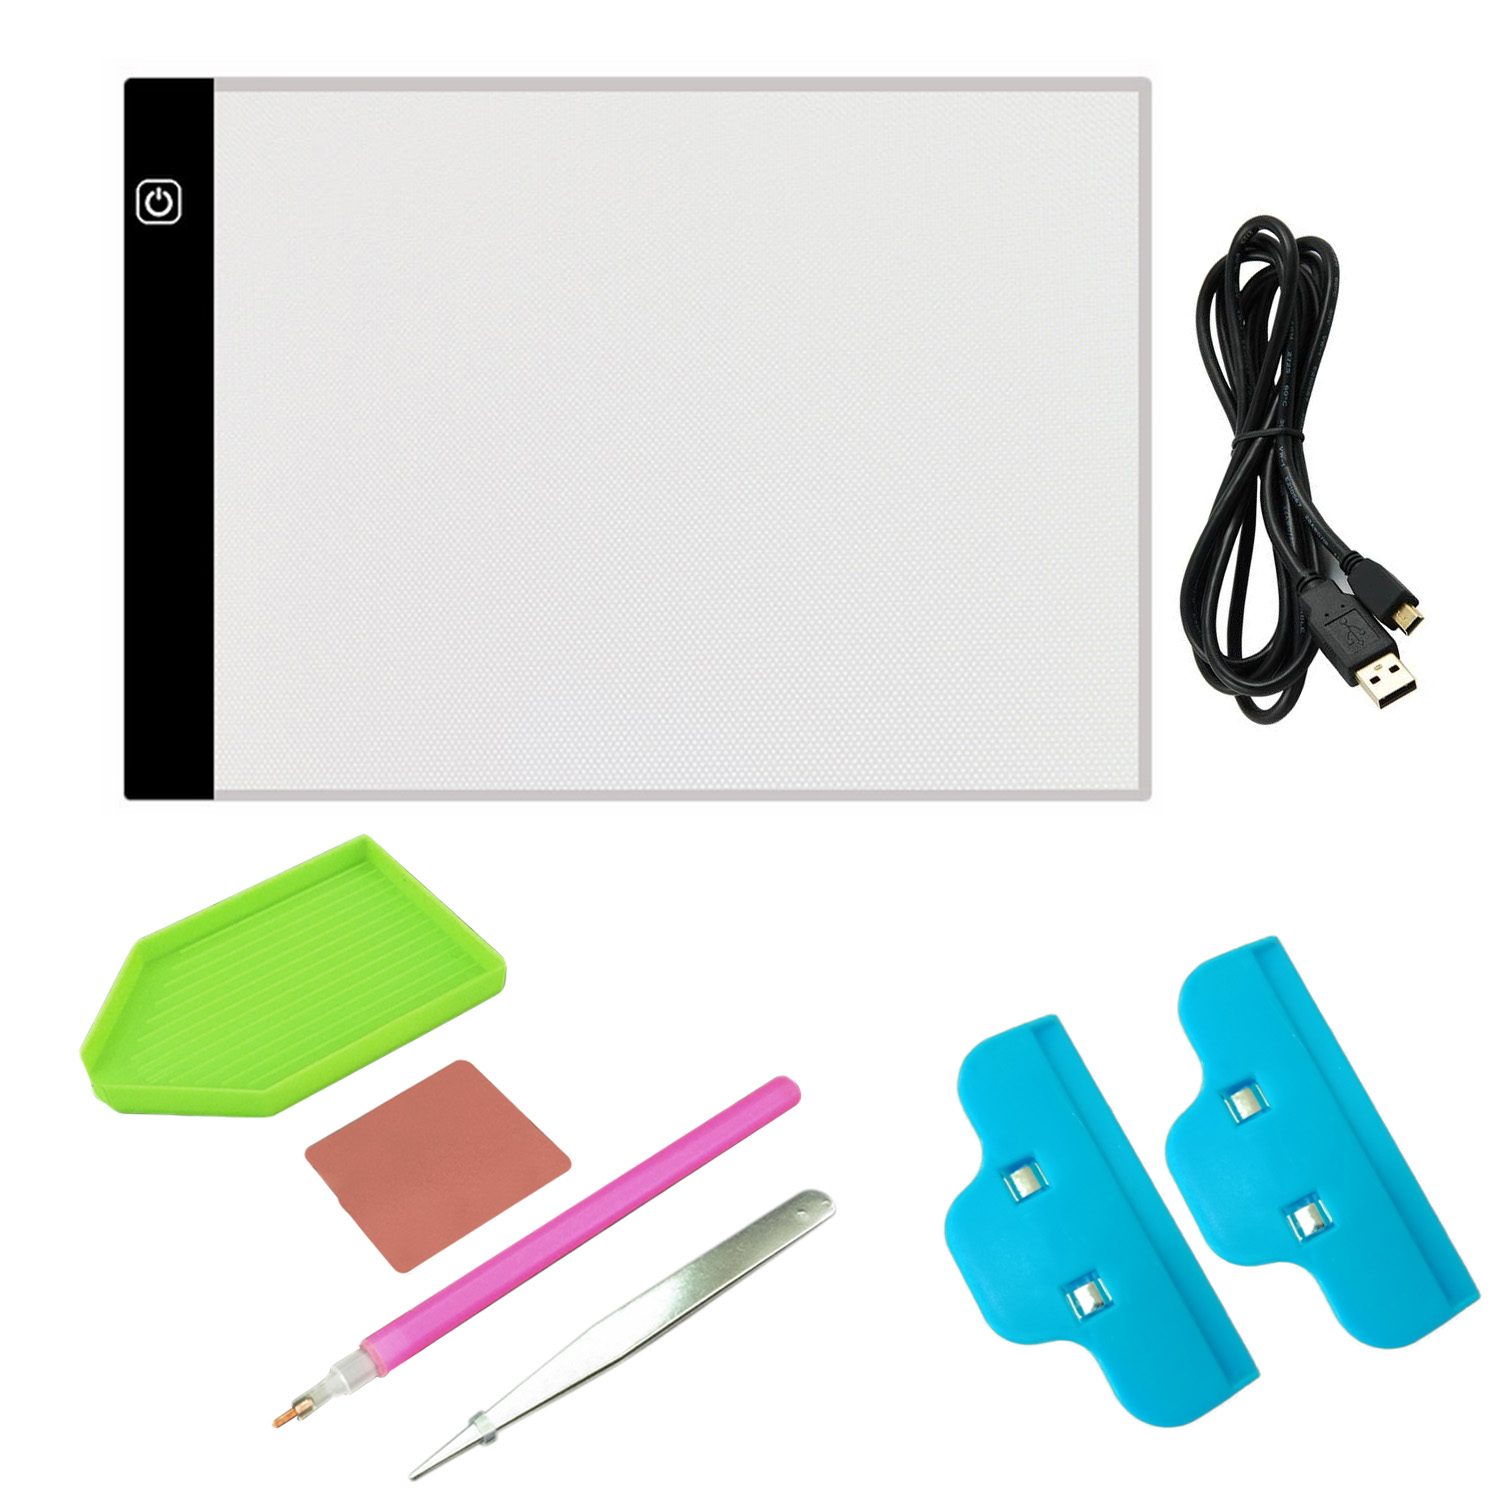 Diamond Painting Cross Stitch Embroidery Kit with A4 LED Light Tablet Board Pad Clips USB Cable Tray Stitch Pen Glue Tweezers вышитая картина rui cross stitch xr d0020 21 dmc ks